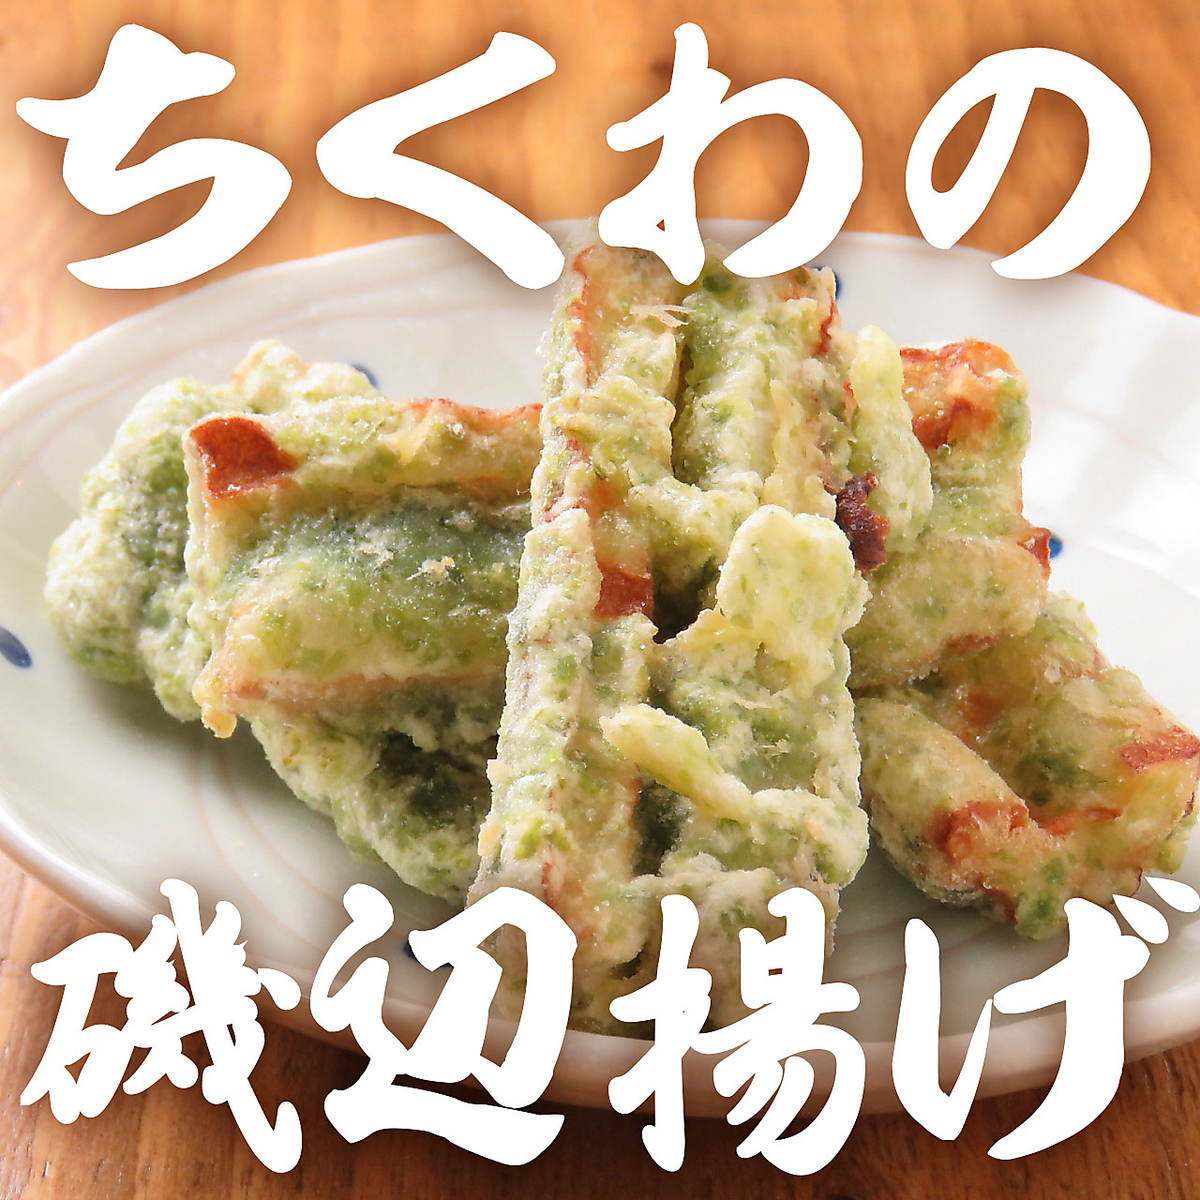 【Fried items】 Deep-fried chickens